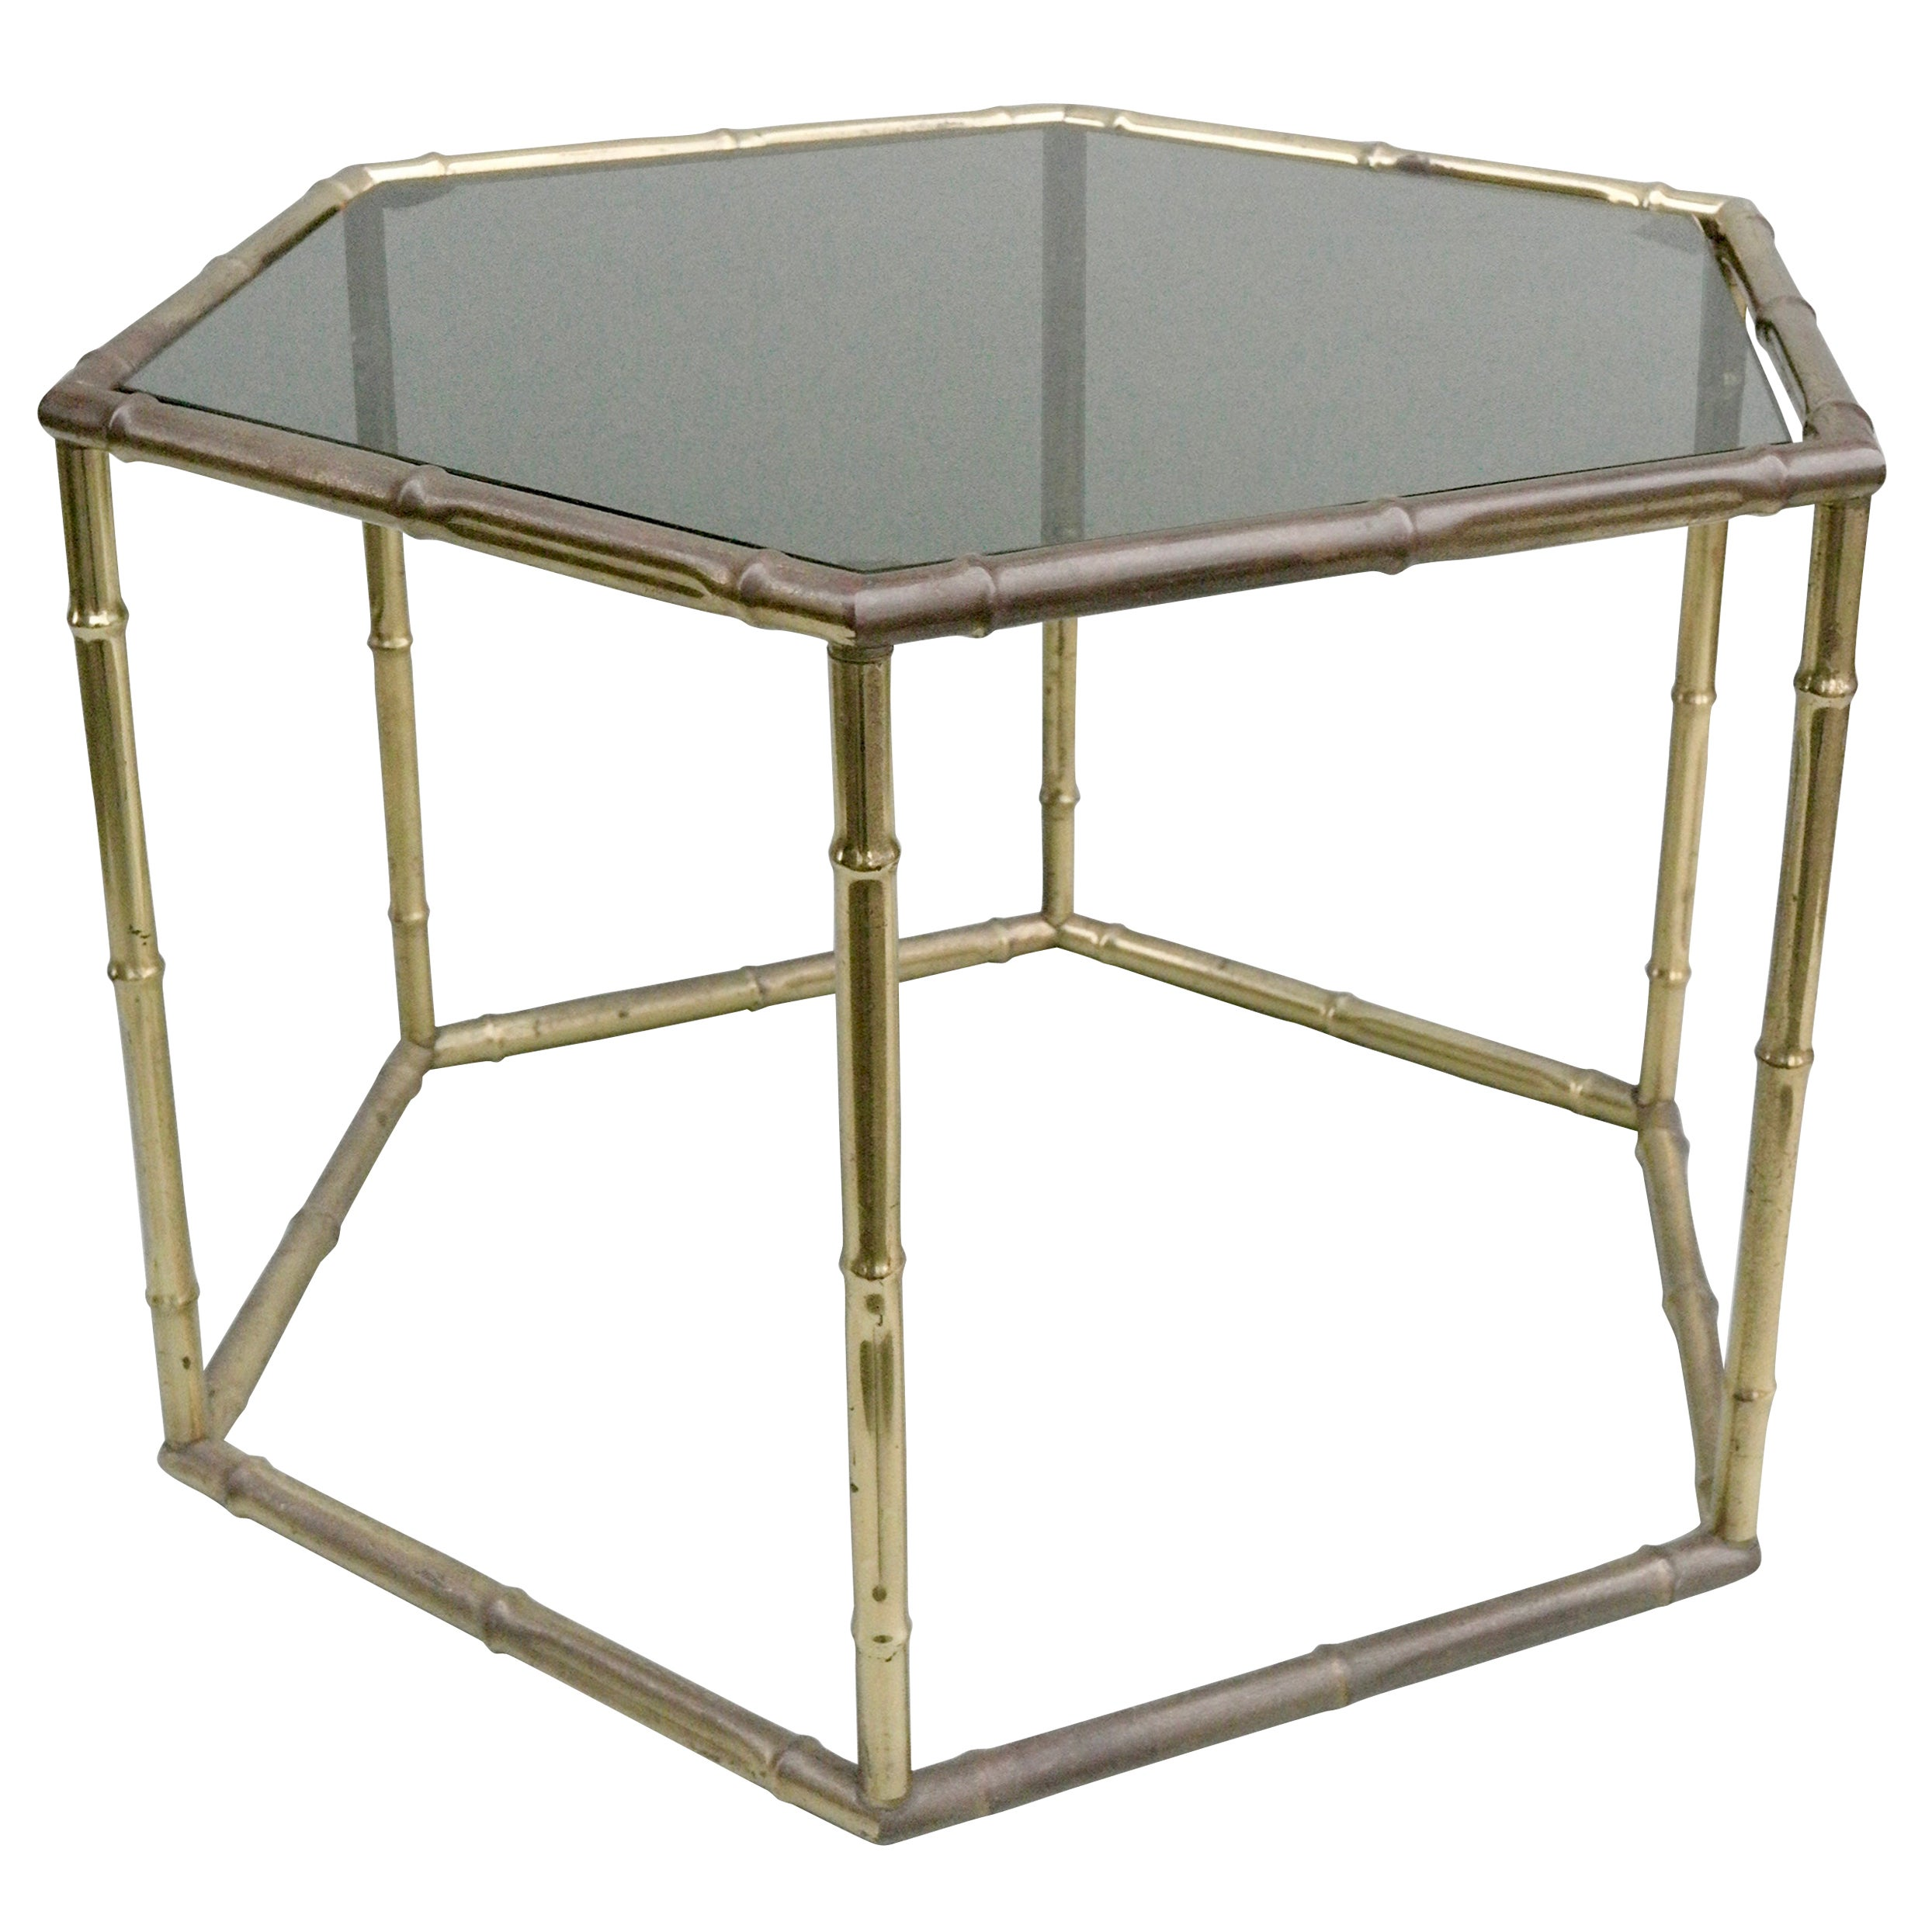 French Symmetrical Gold Metal Bamboo Side Table with Dark Glass Top